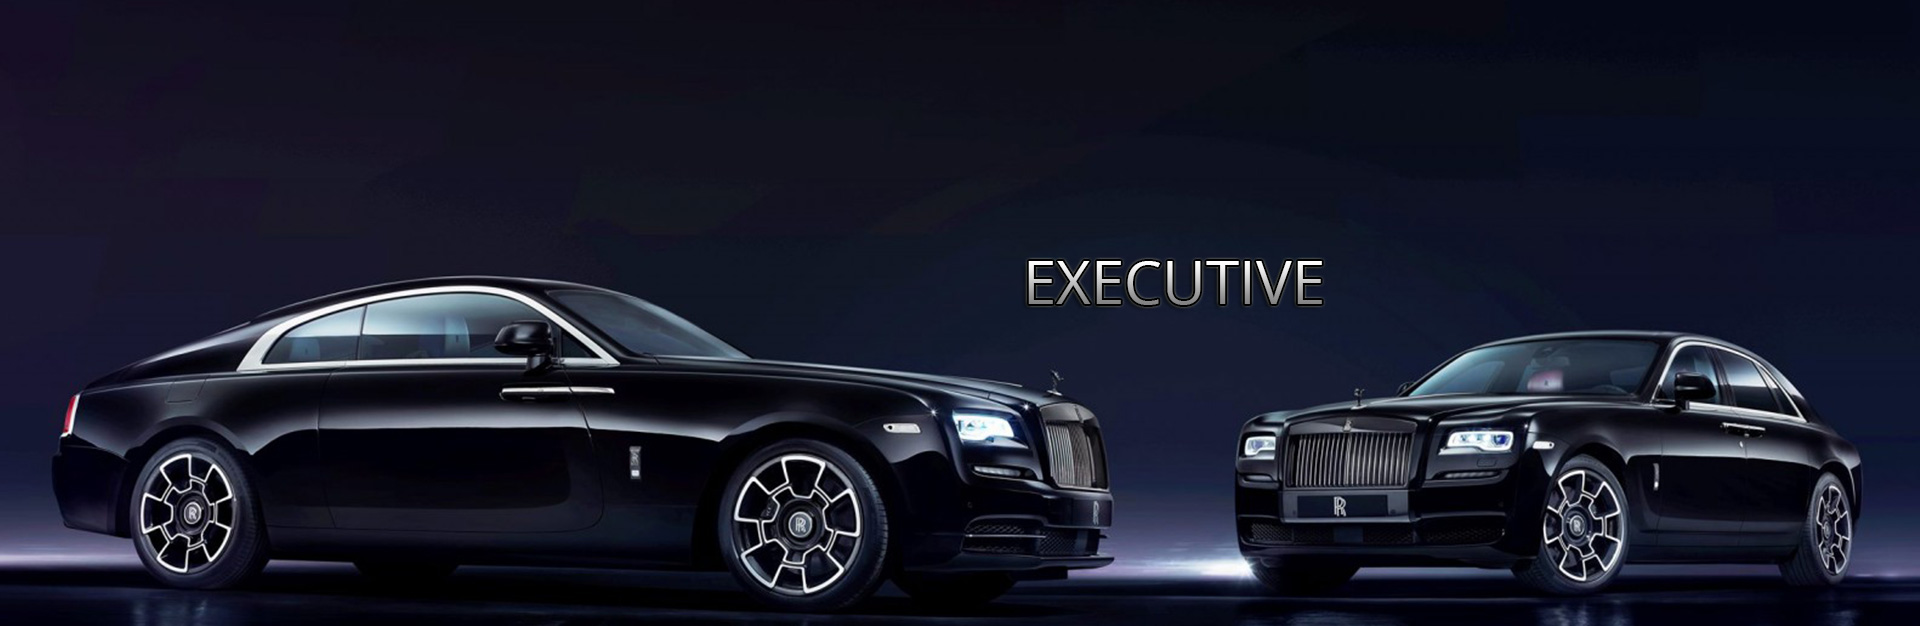 Hire executive cars